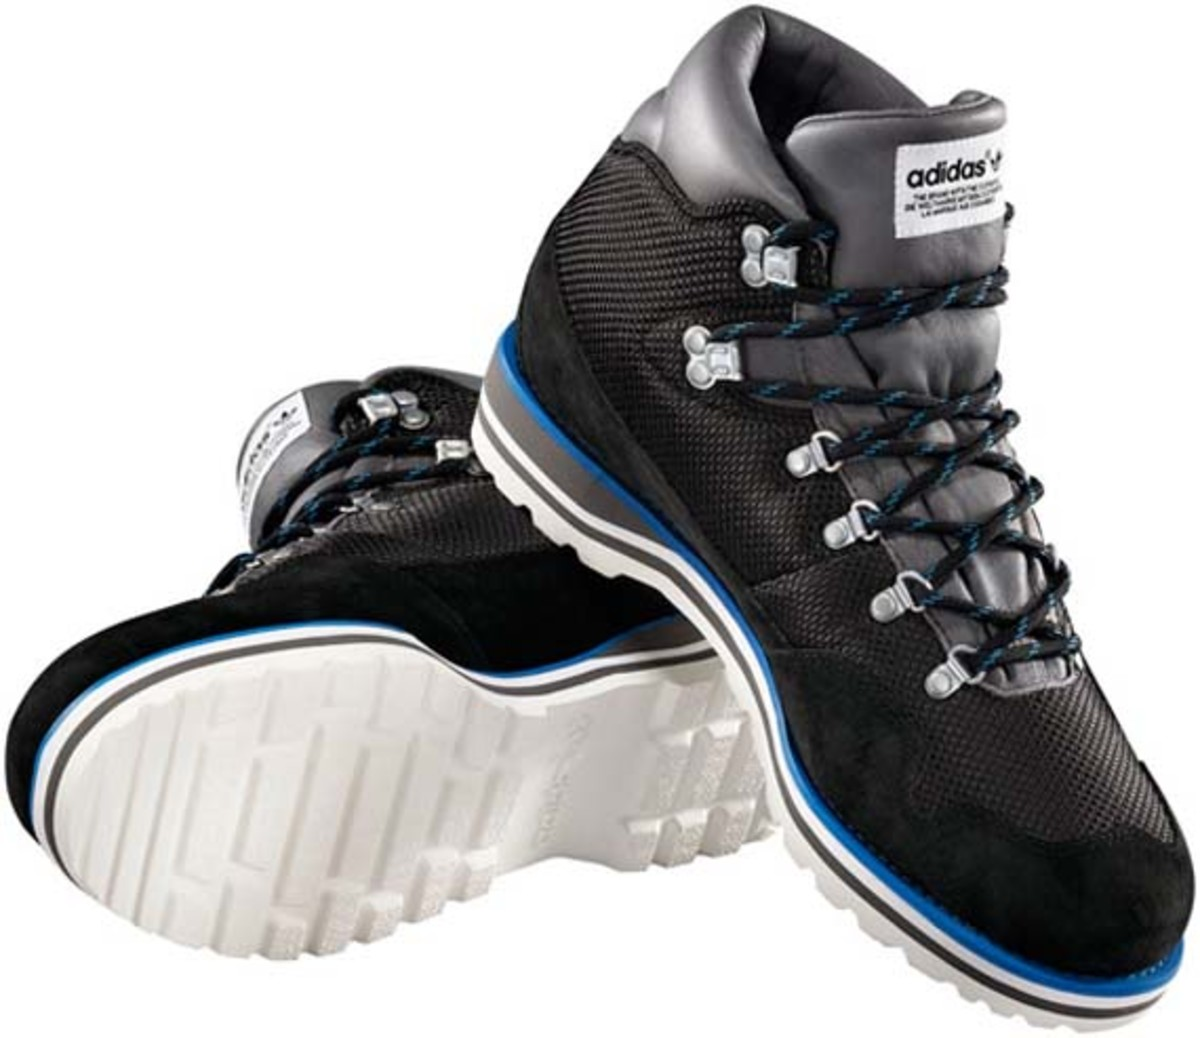 ADIDAS FALL 2012 Performance WearShoes TrekkingHiking